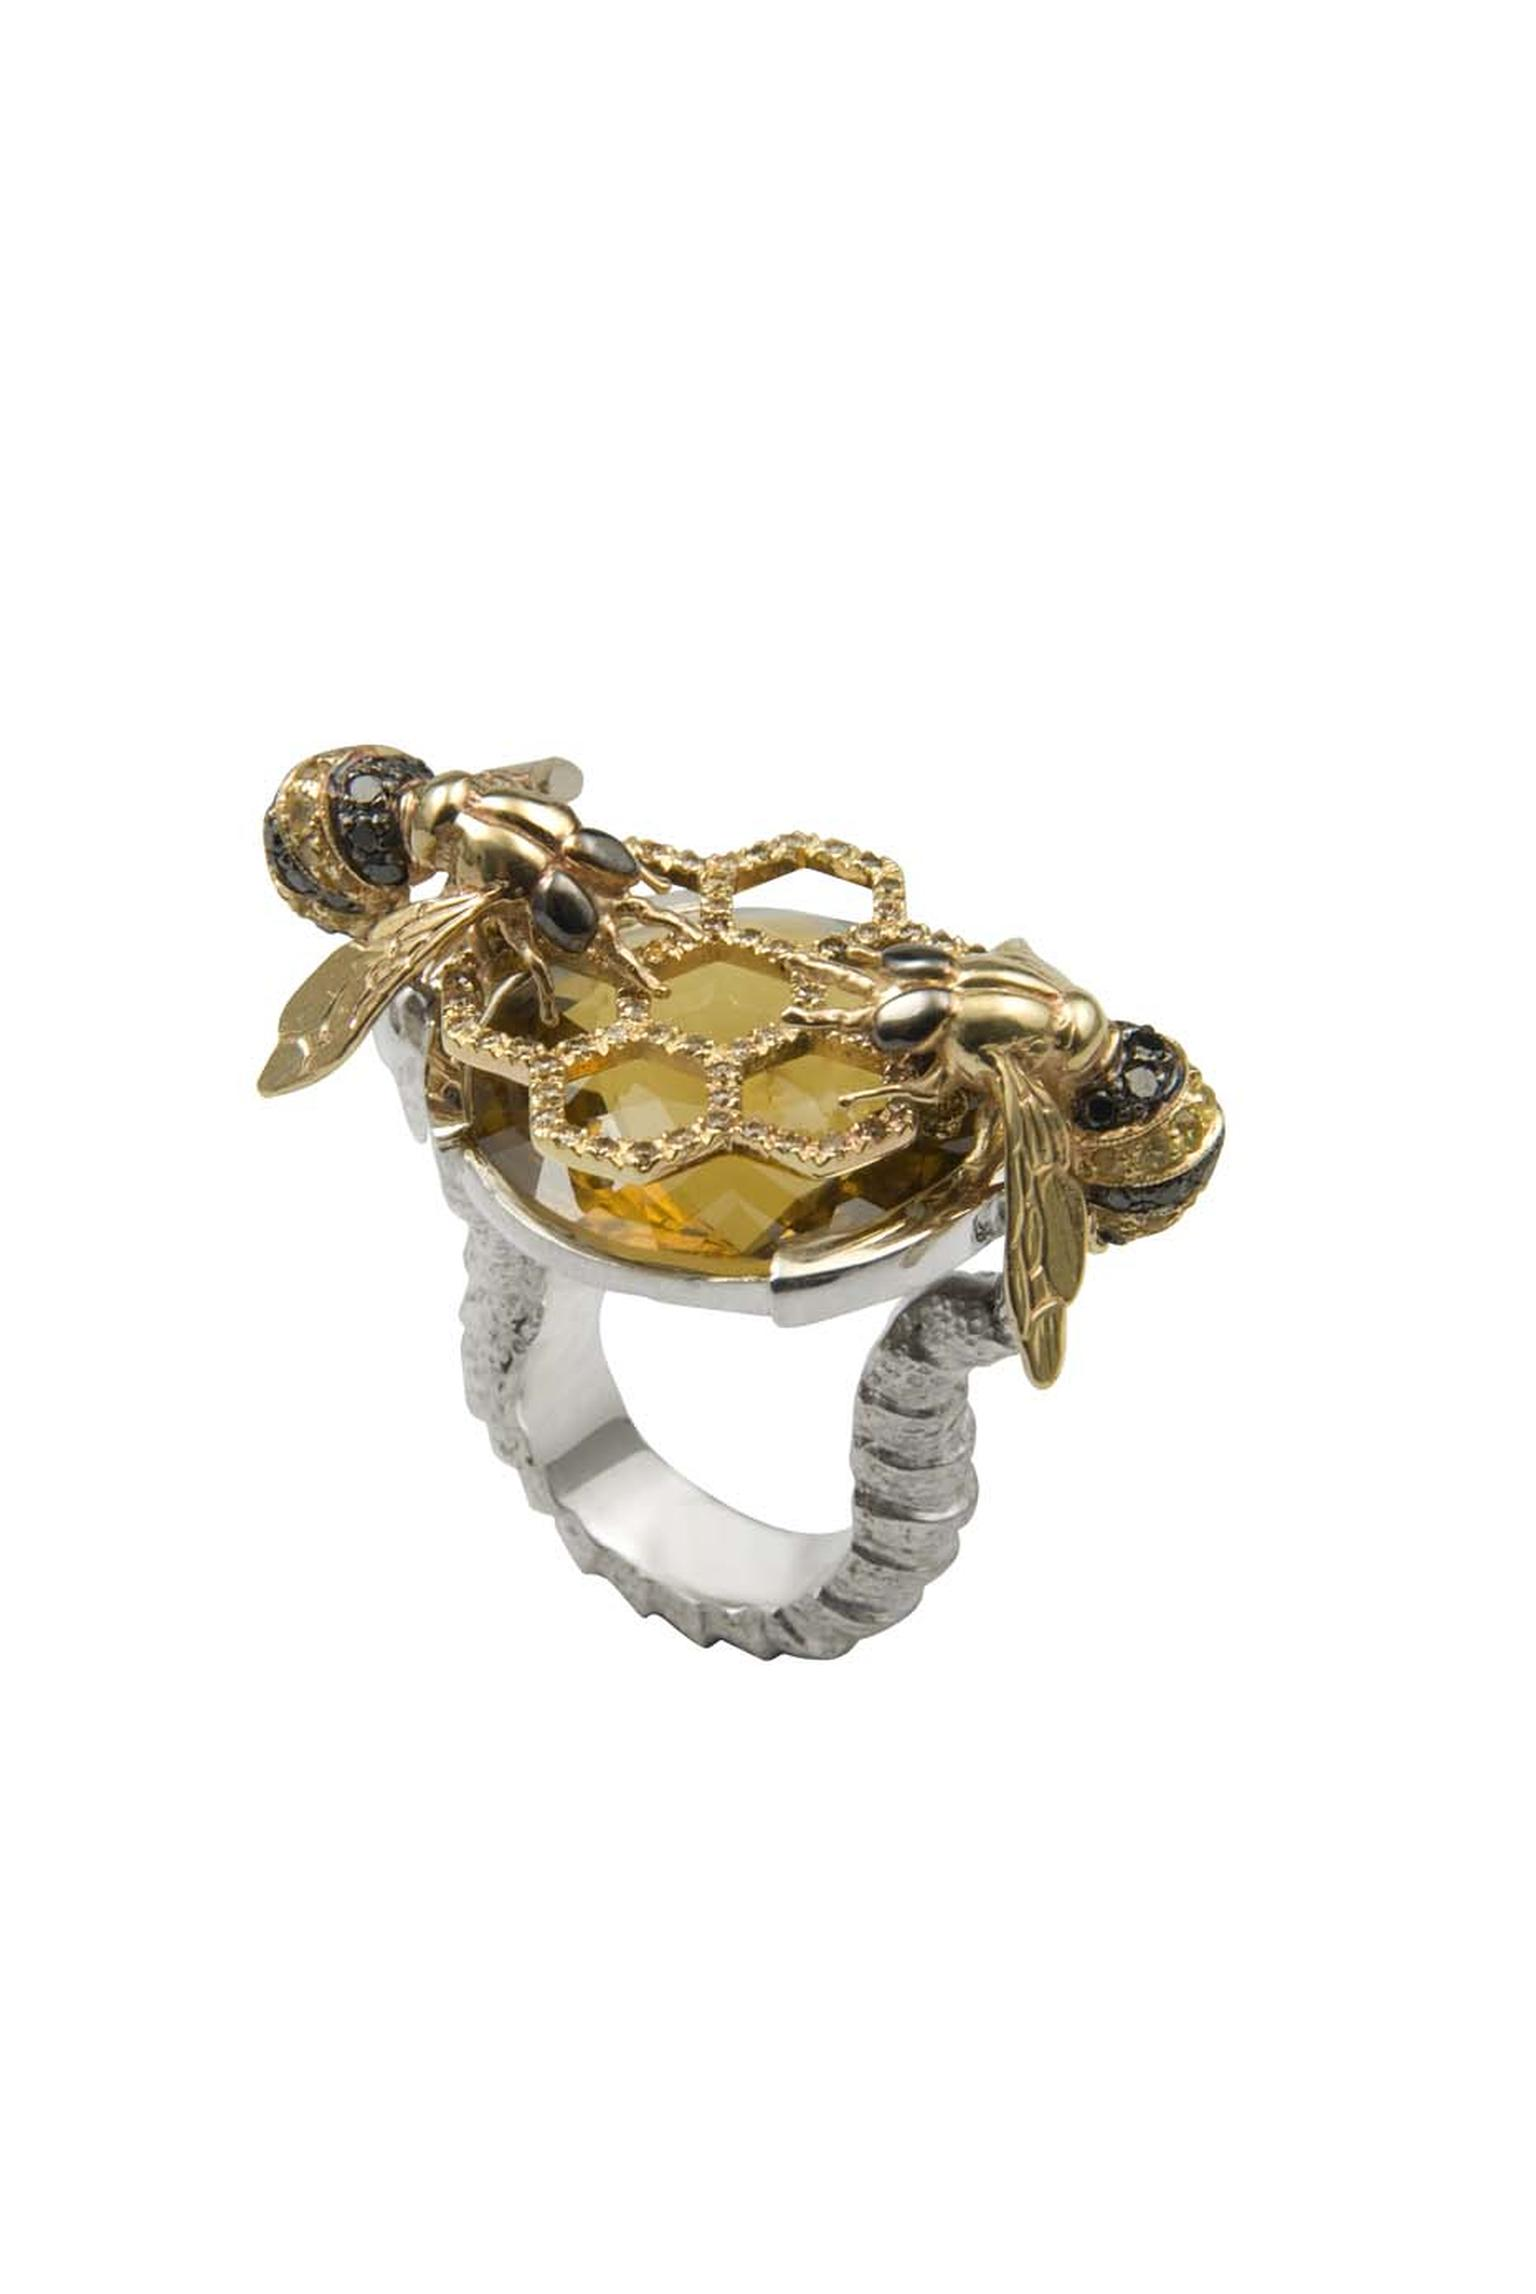 Delfina Delettrez cocktail bees ring in gold and silver with black diamonds, yellow sapphires, cognac diamonds and one cognac quartz.